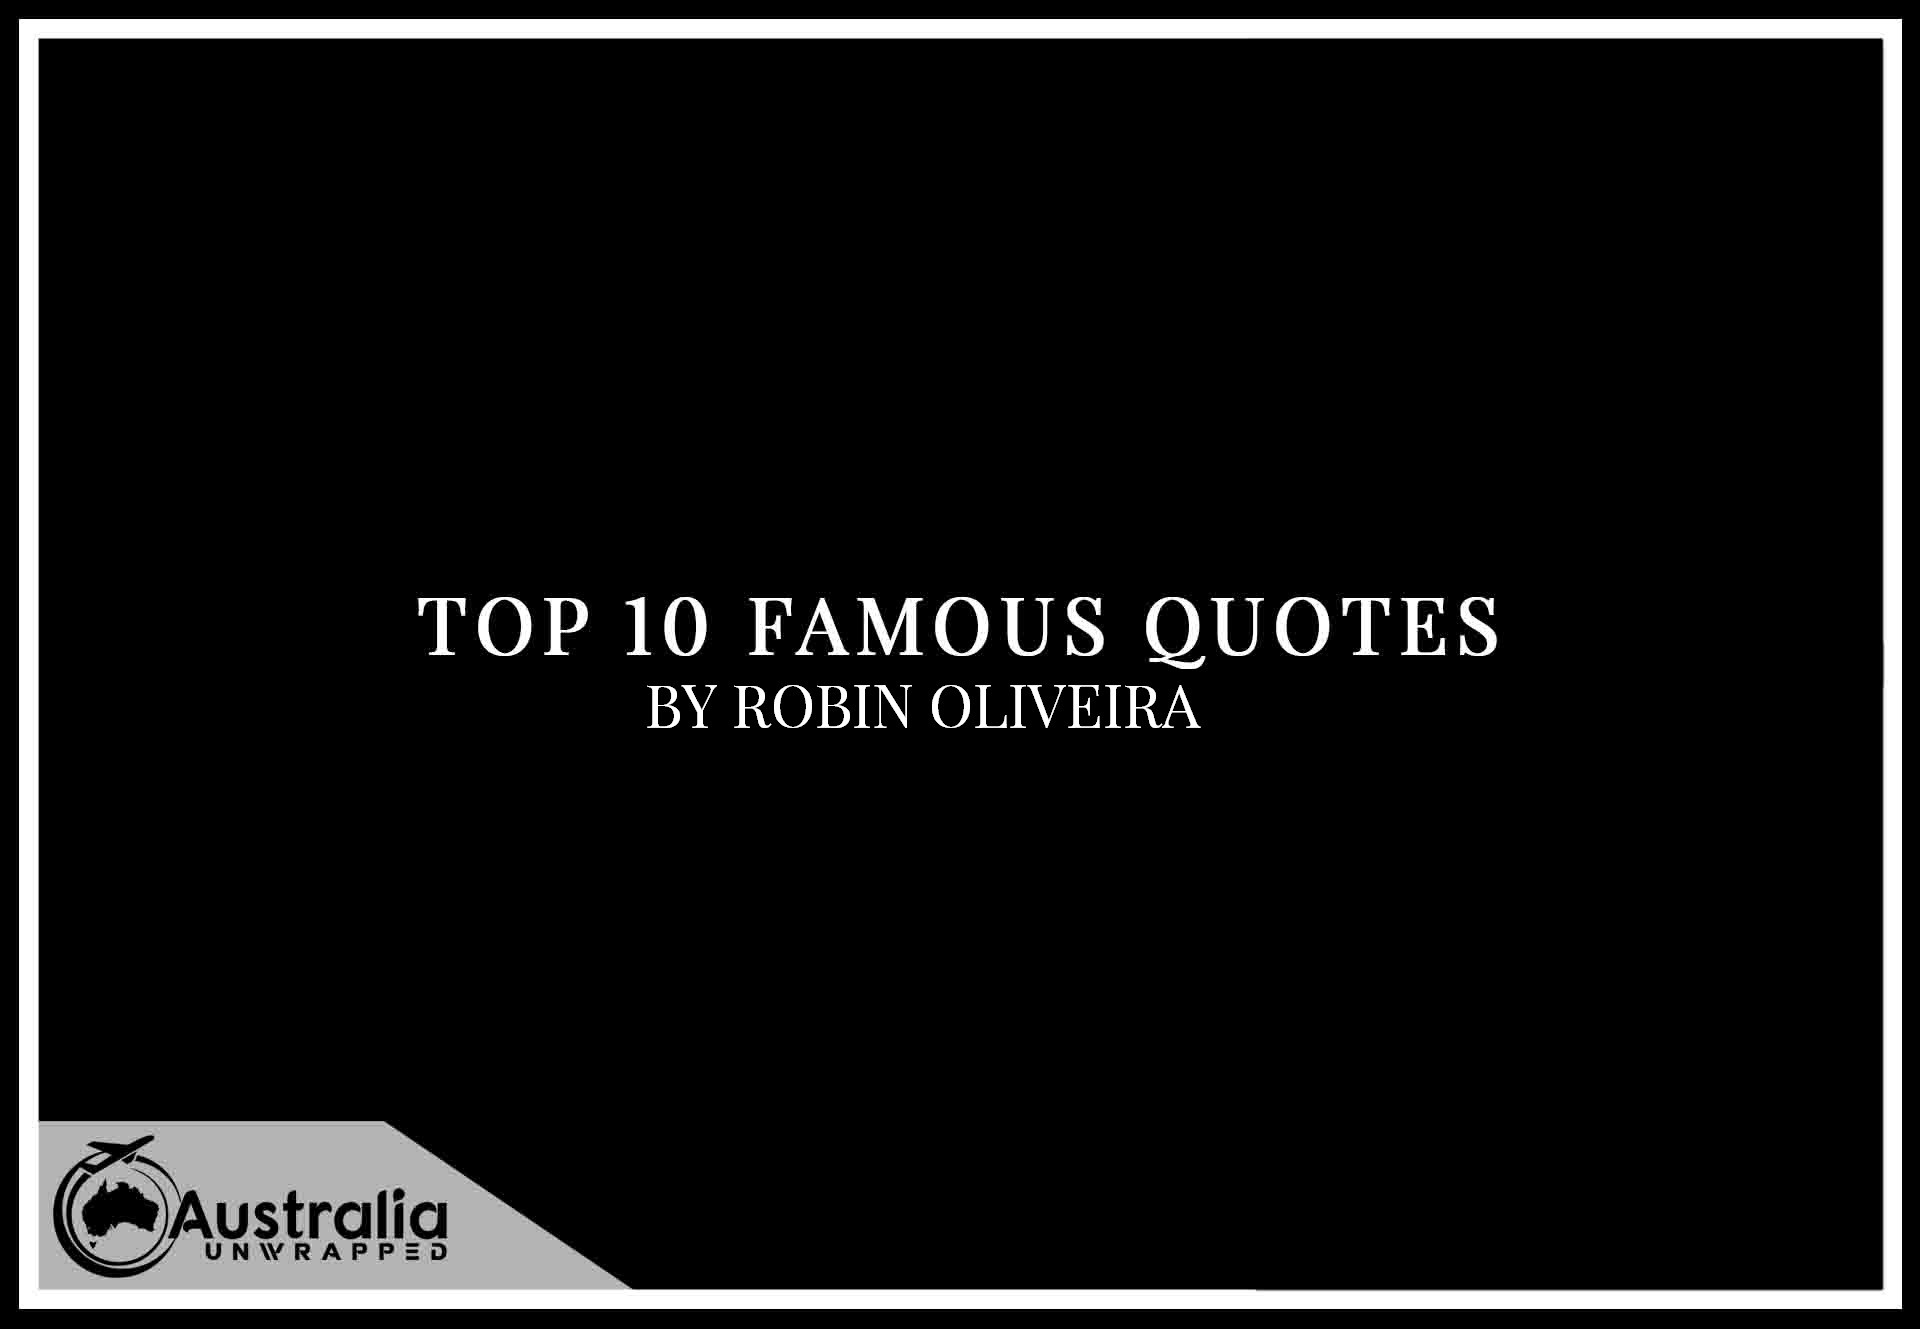 Top 10 Famous Quotes by Author Robin Oliveira